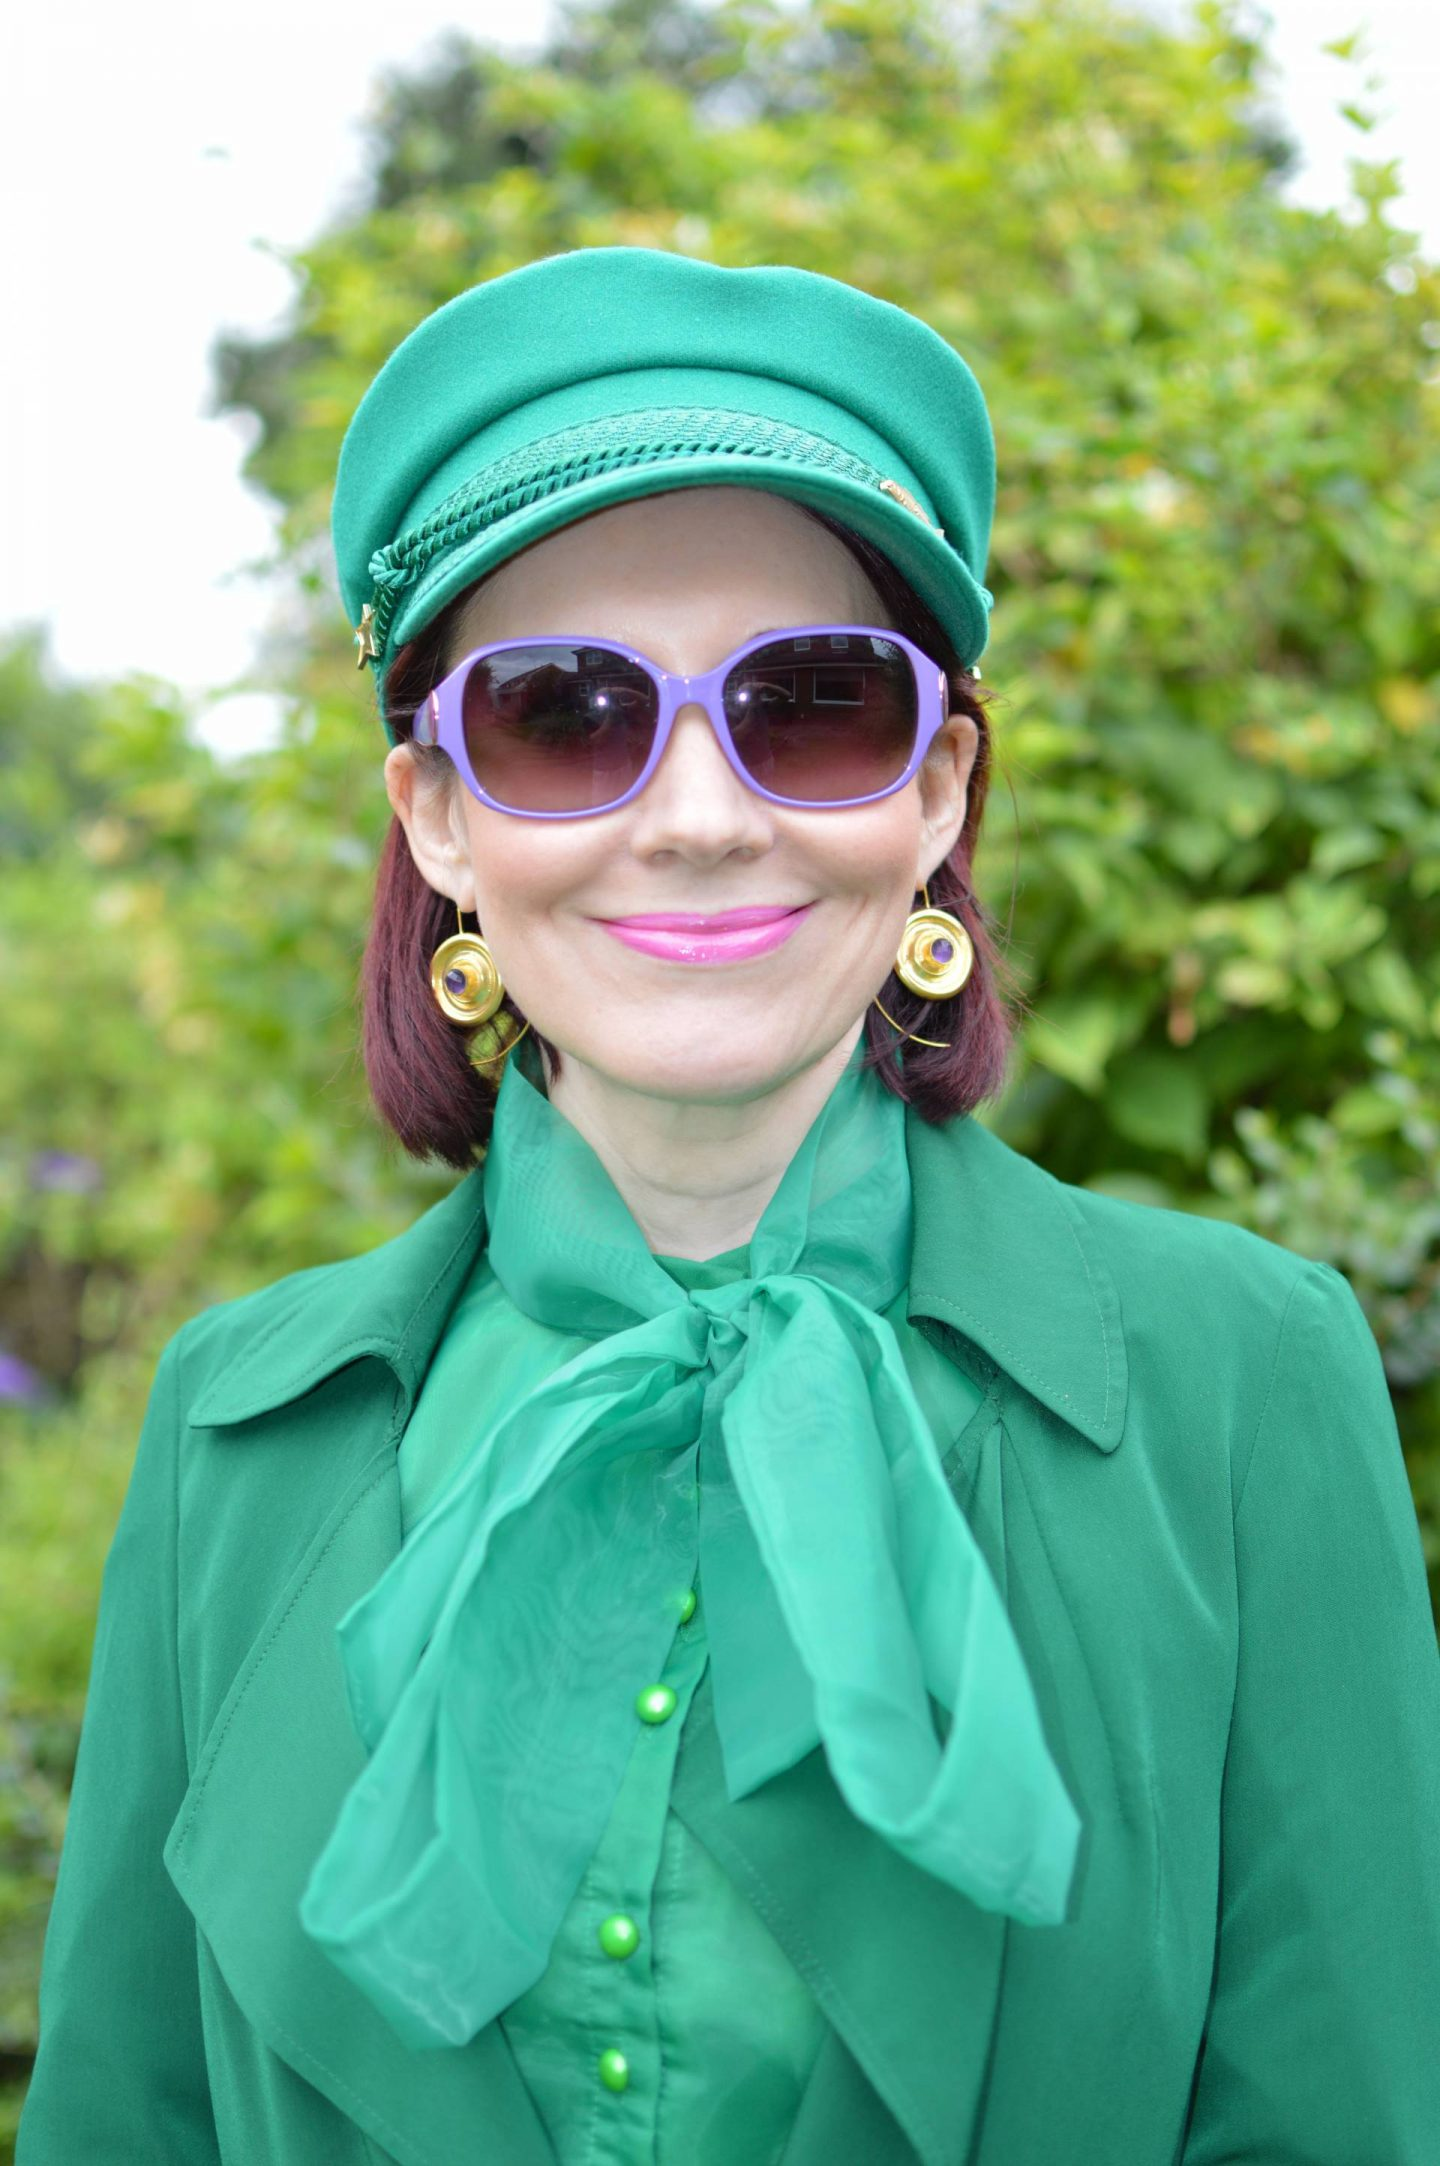 Green Organza Bow Blouse, Fabienne Chapot green hat